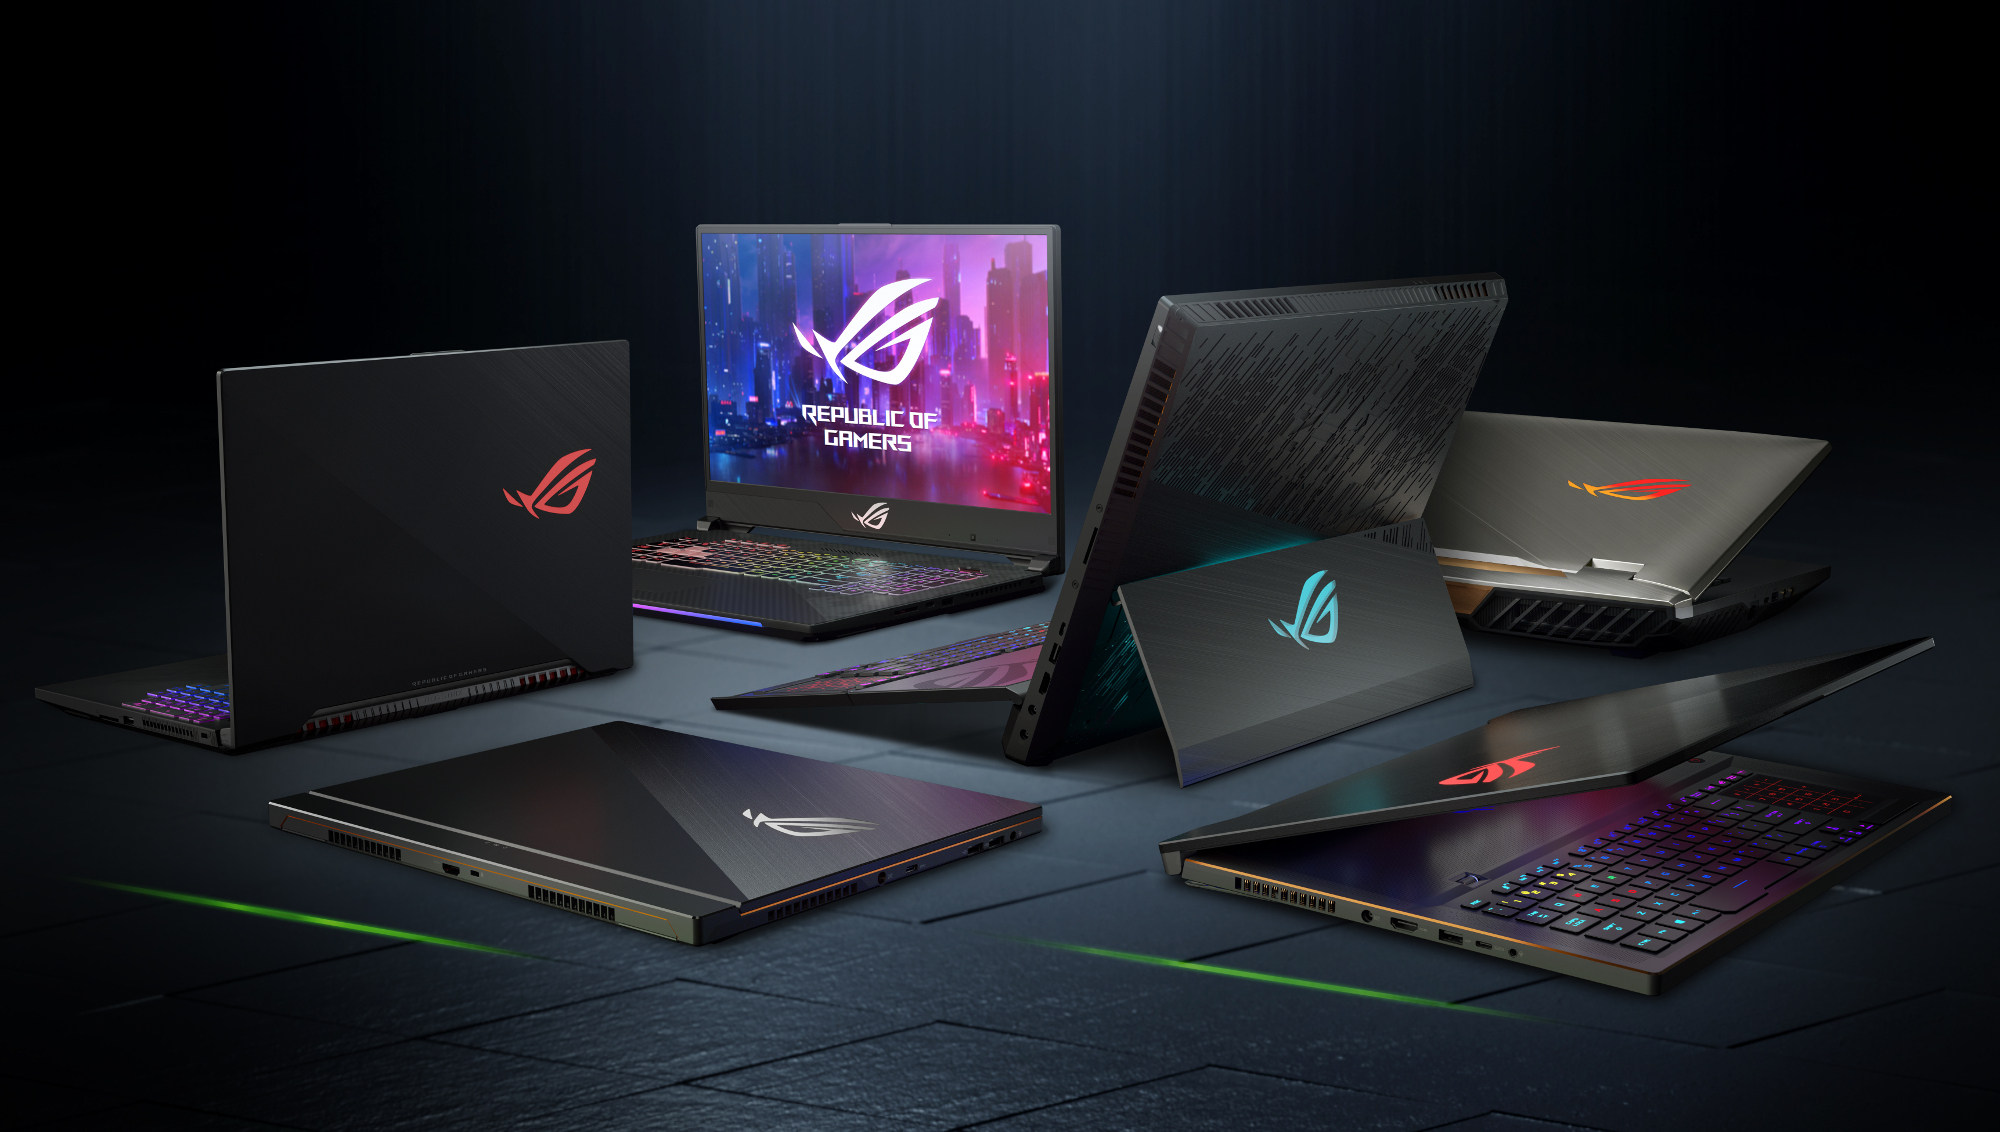 ROG's GeForce RTX gaming laptop guide: meet the latest generation of